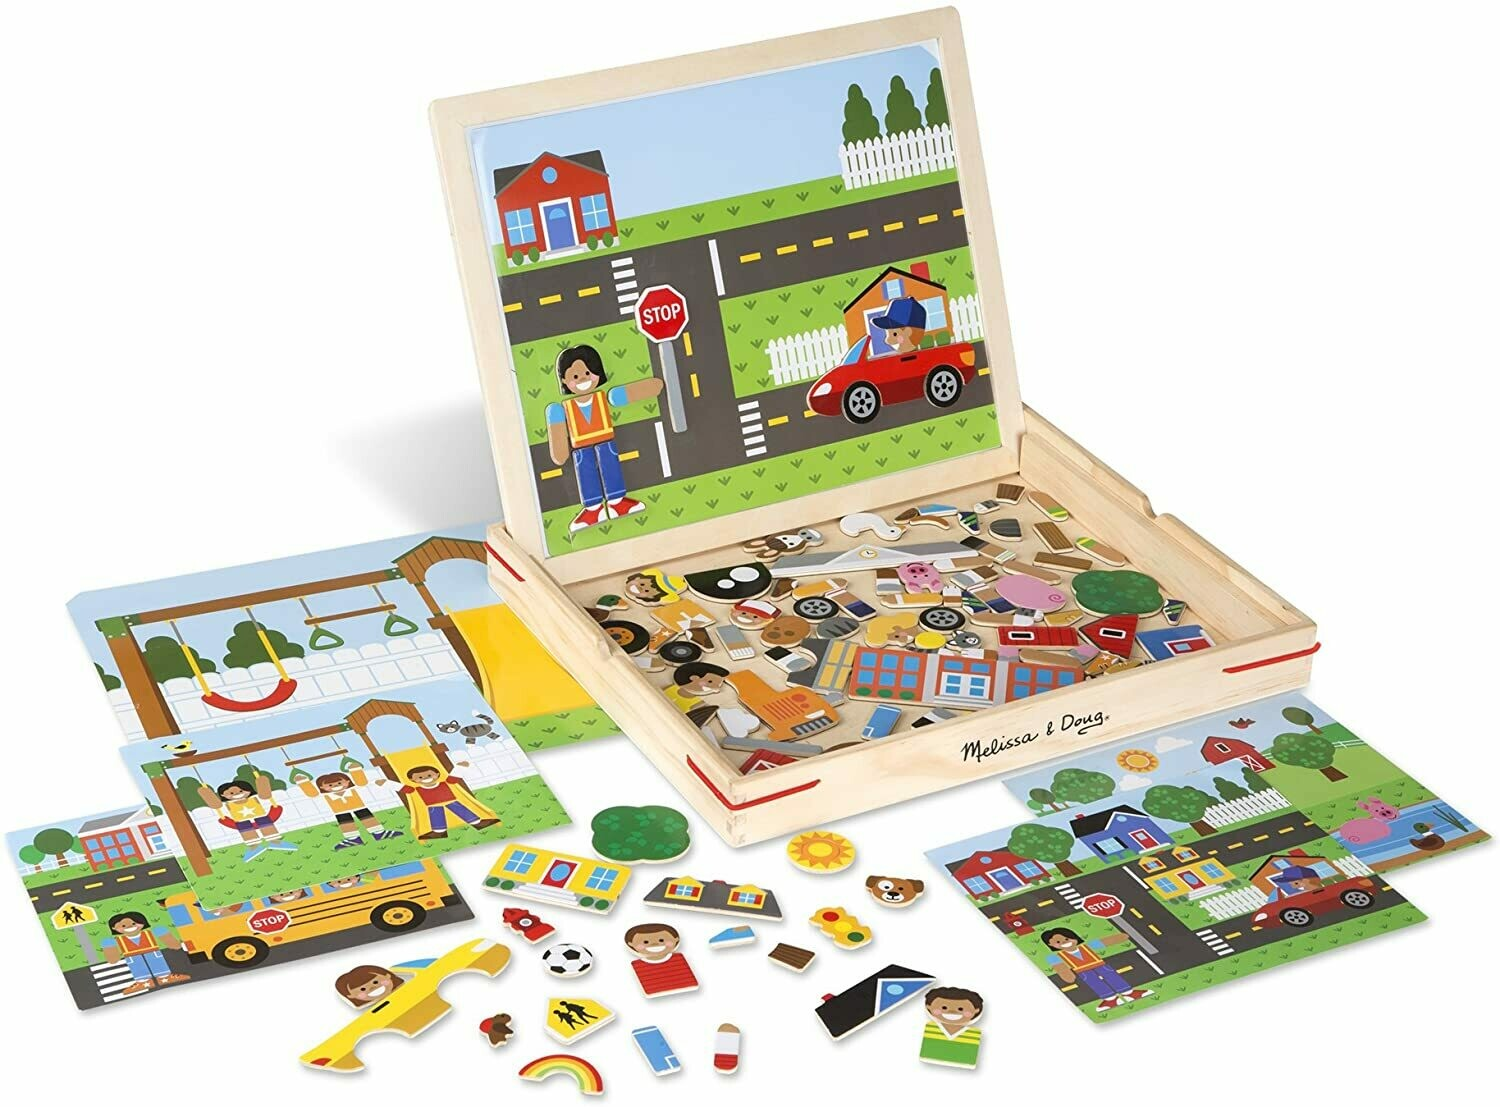 Estes; Wooden Magnetic Matching Picture Game